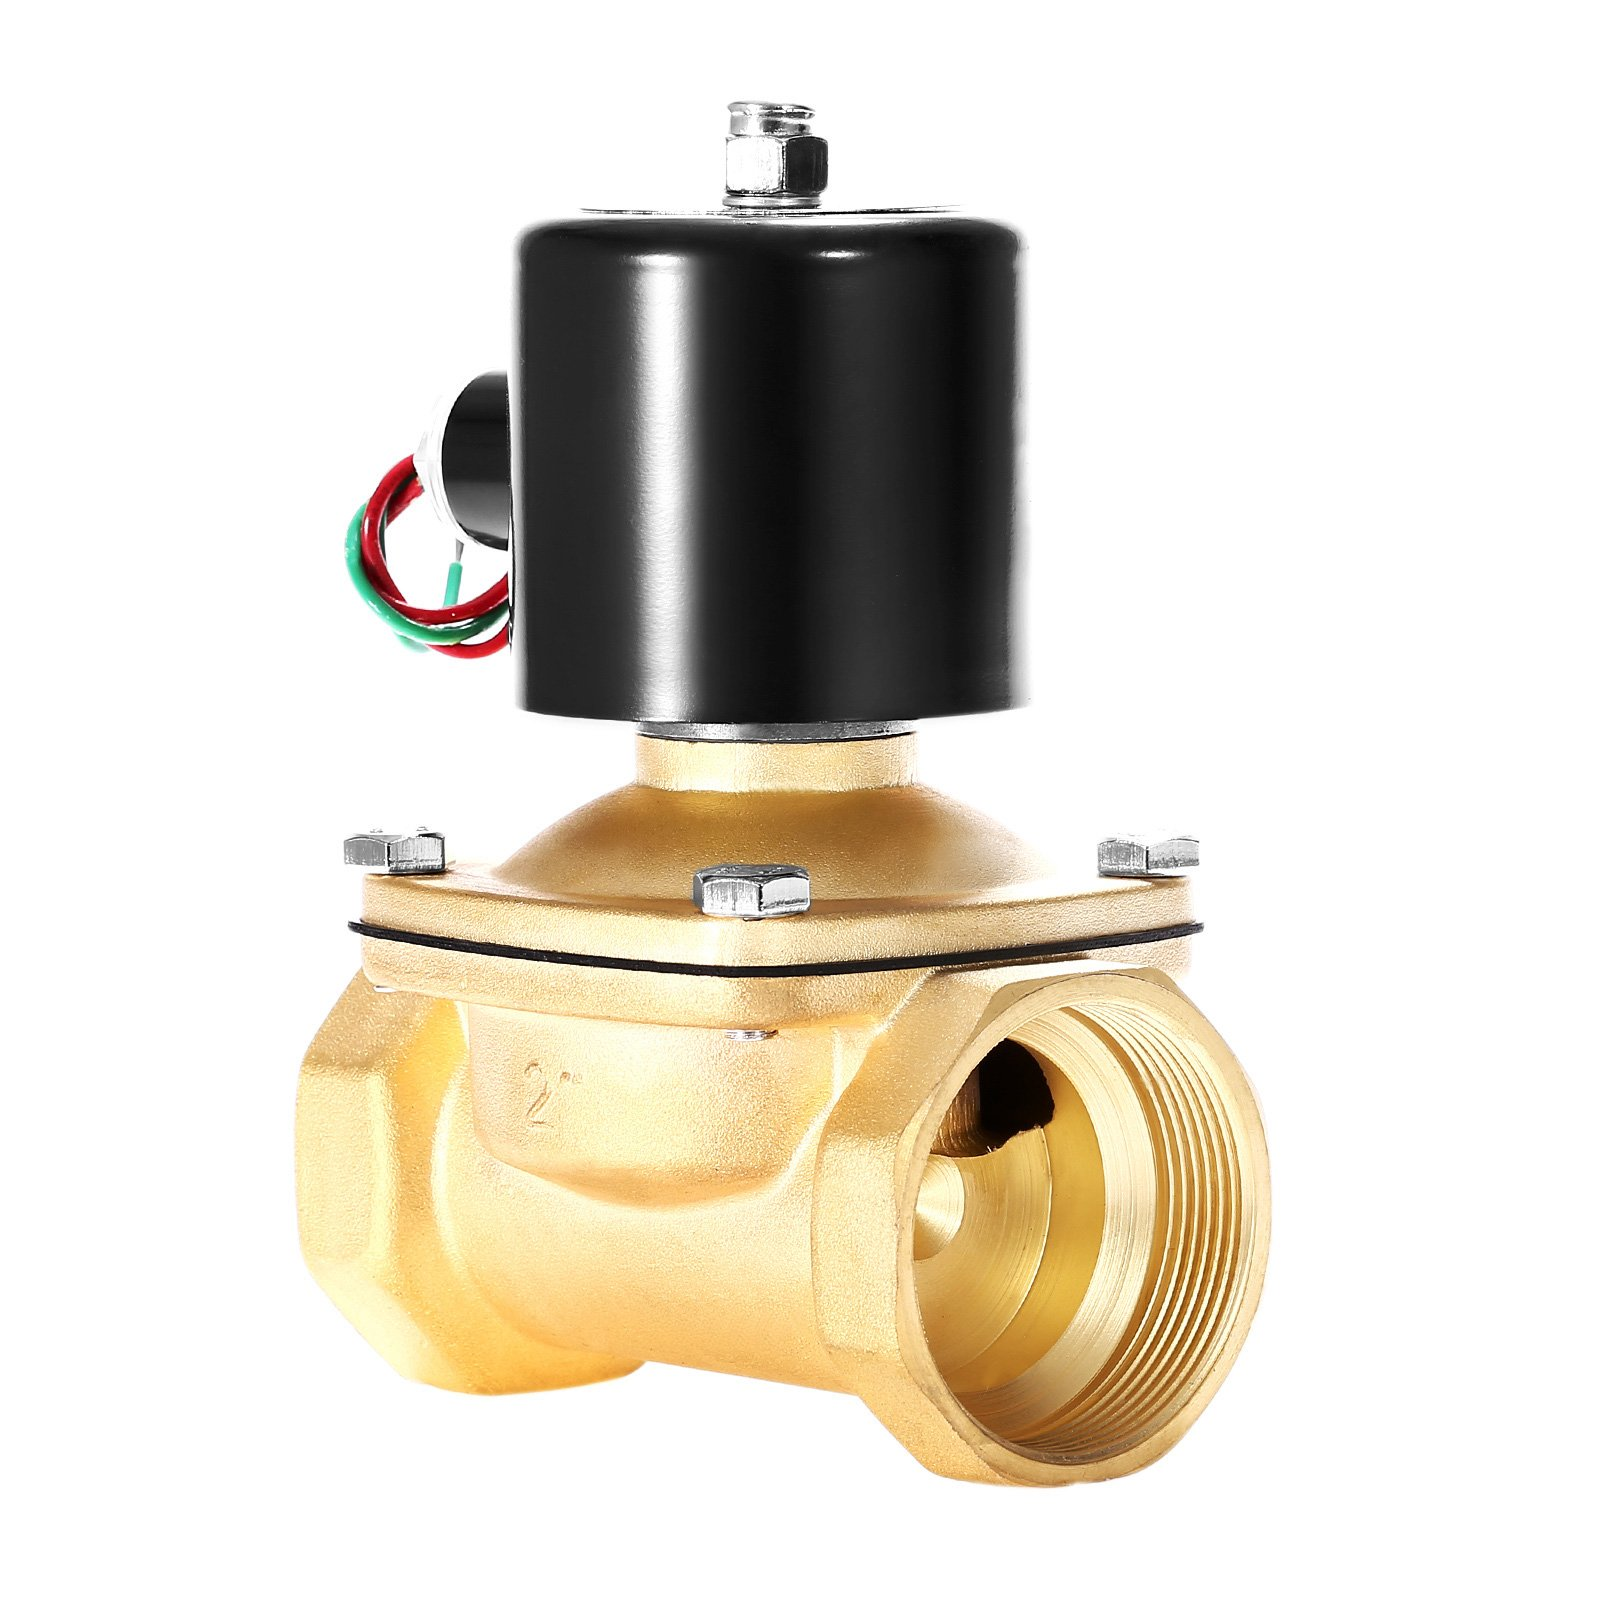 Happybuy Electric Solenoid Valve NPT 2 Inch Brass Solenoid Valve AC 110V Electric Solenoid Valve Normally Closed Compatible with Water Gas Oil